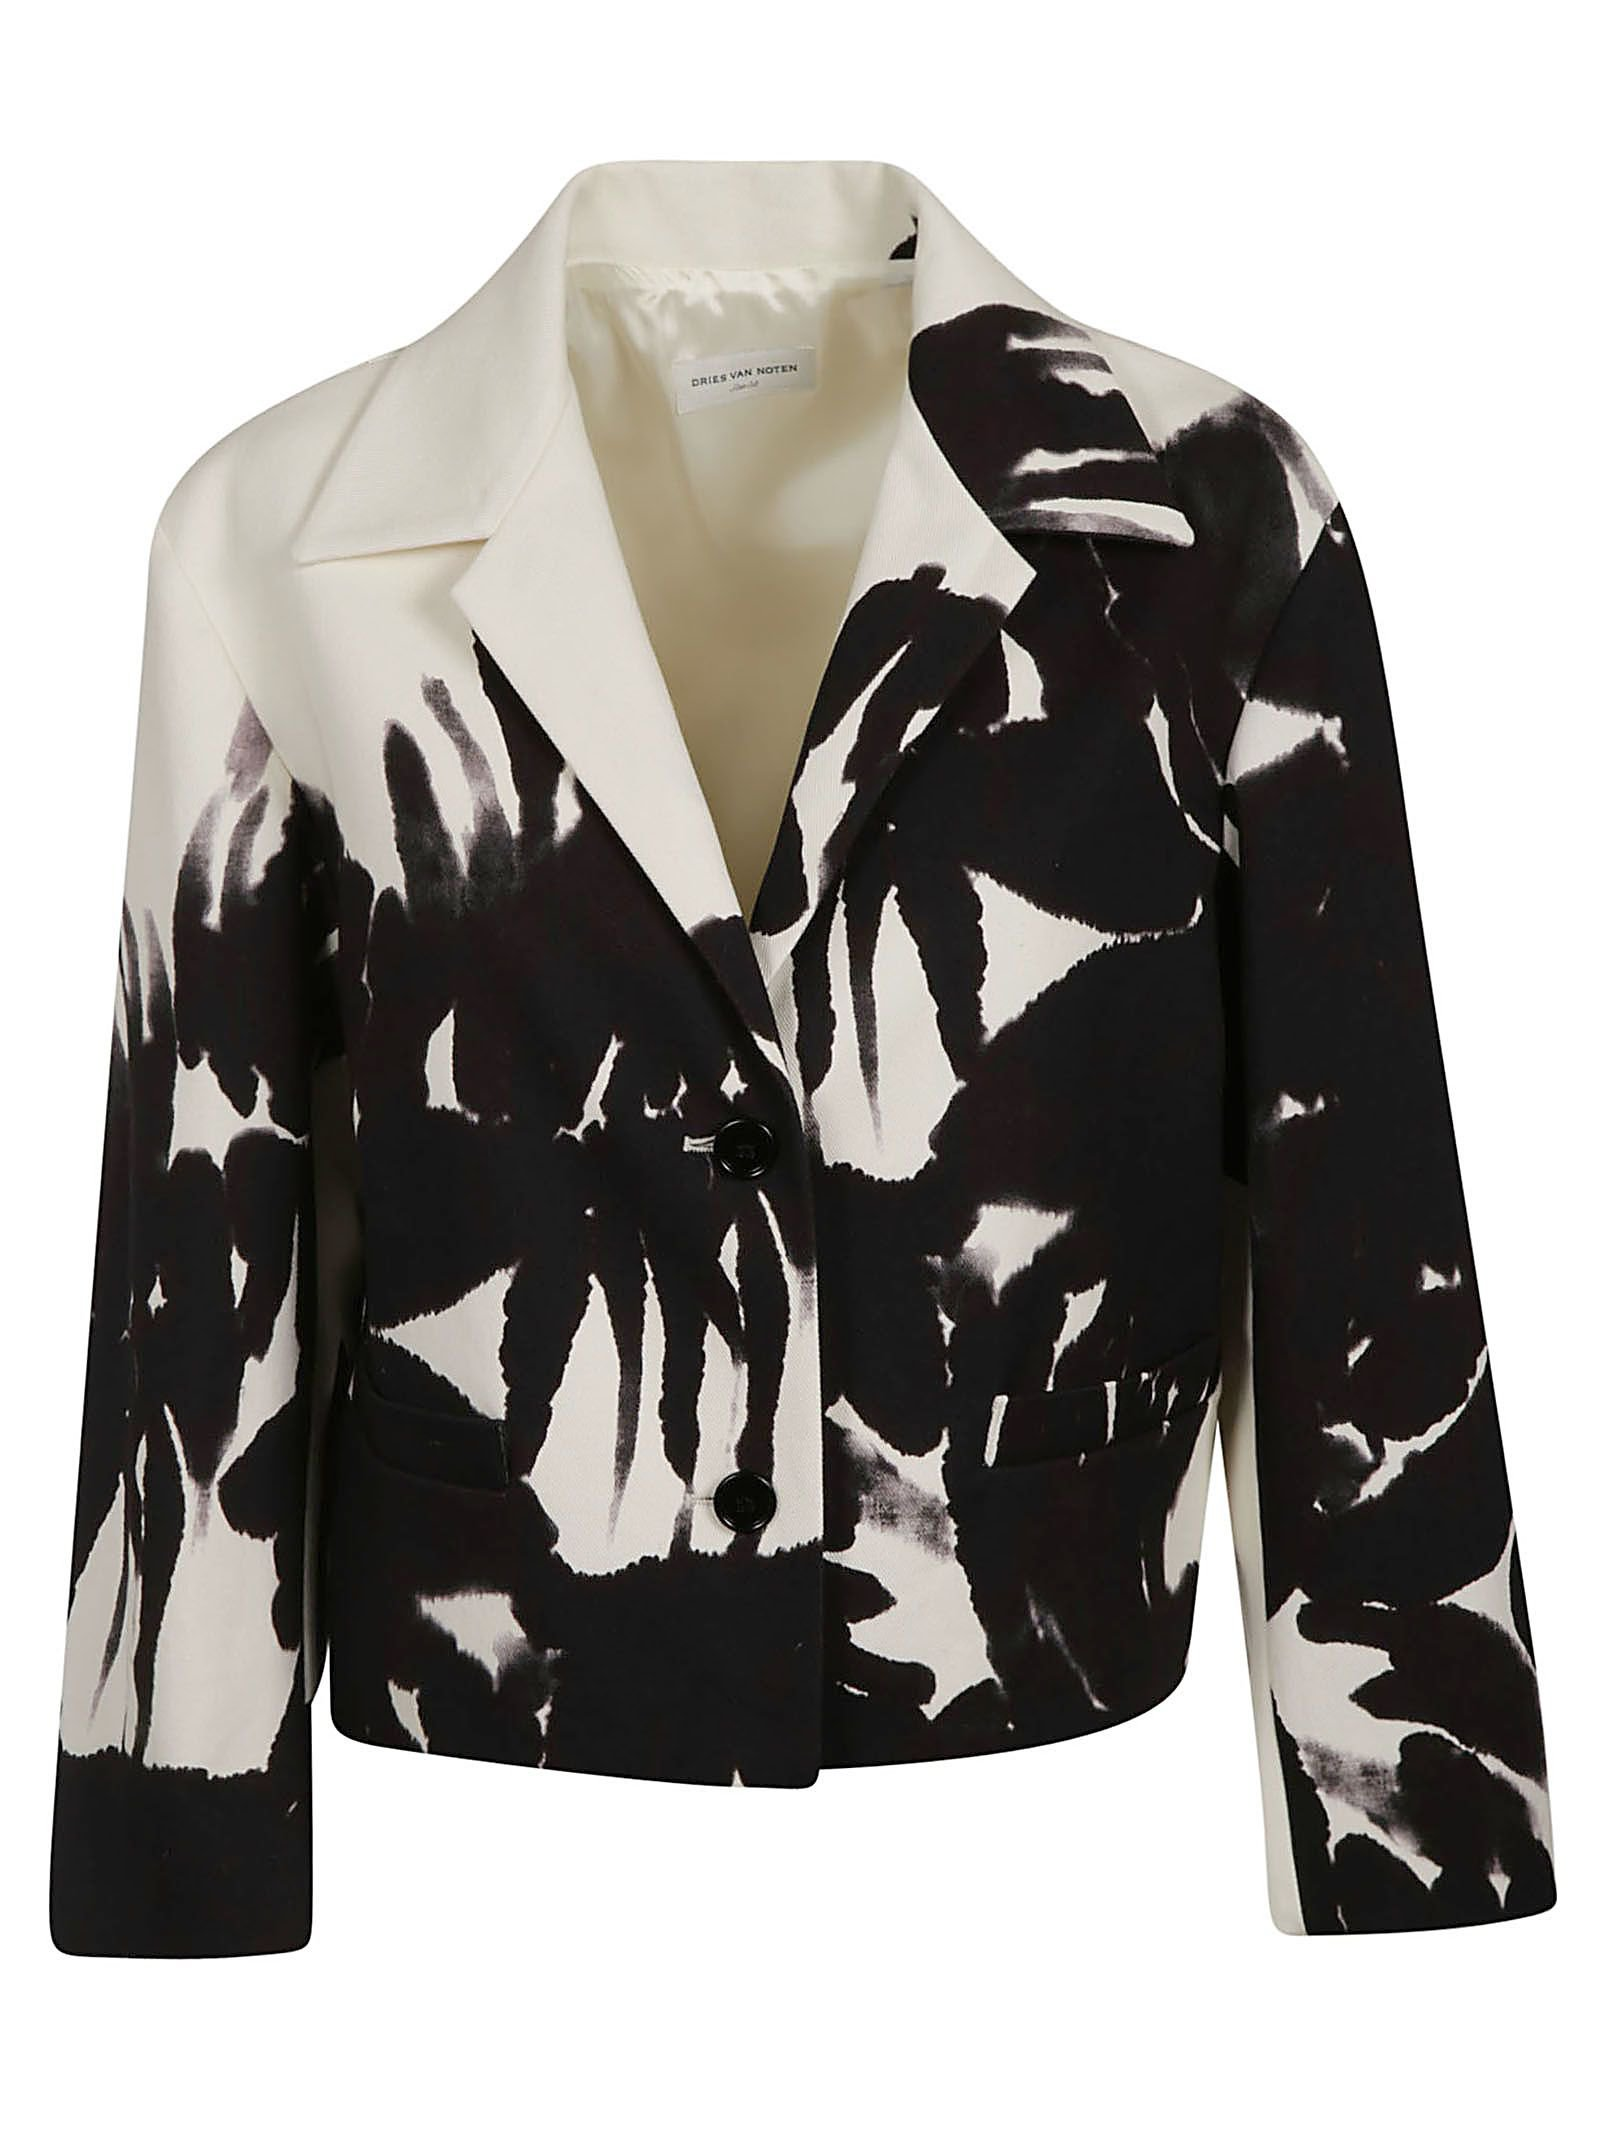 Dries Van Noten Tropical Print Blazer